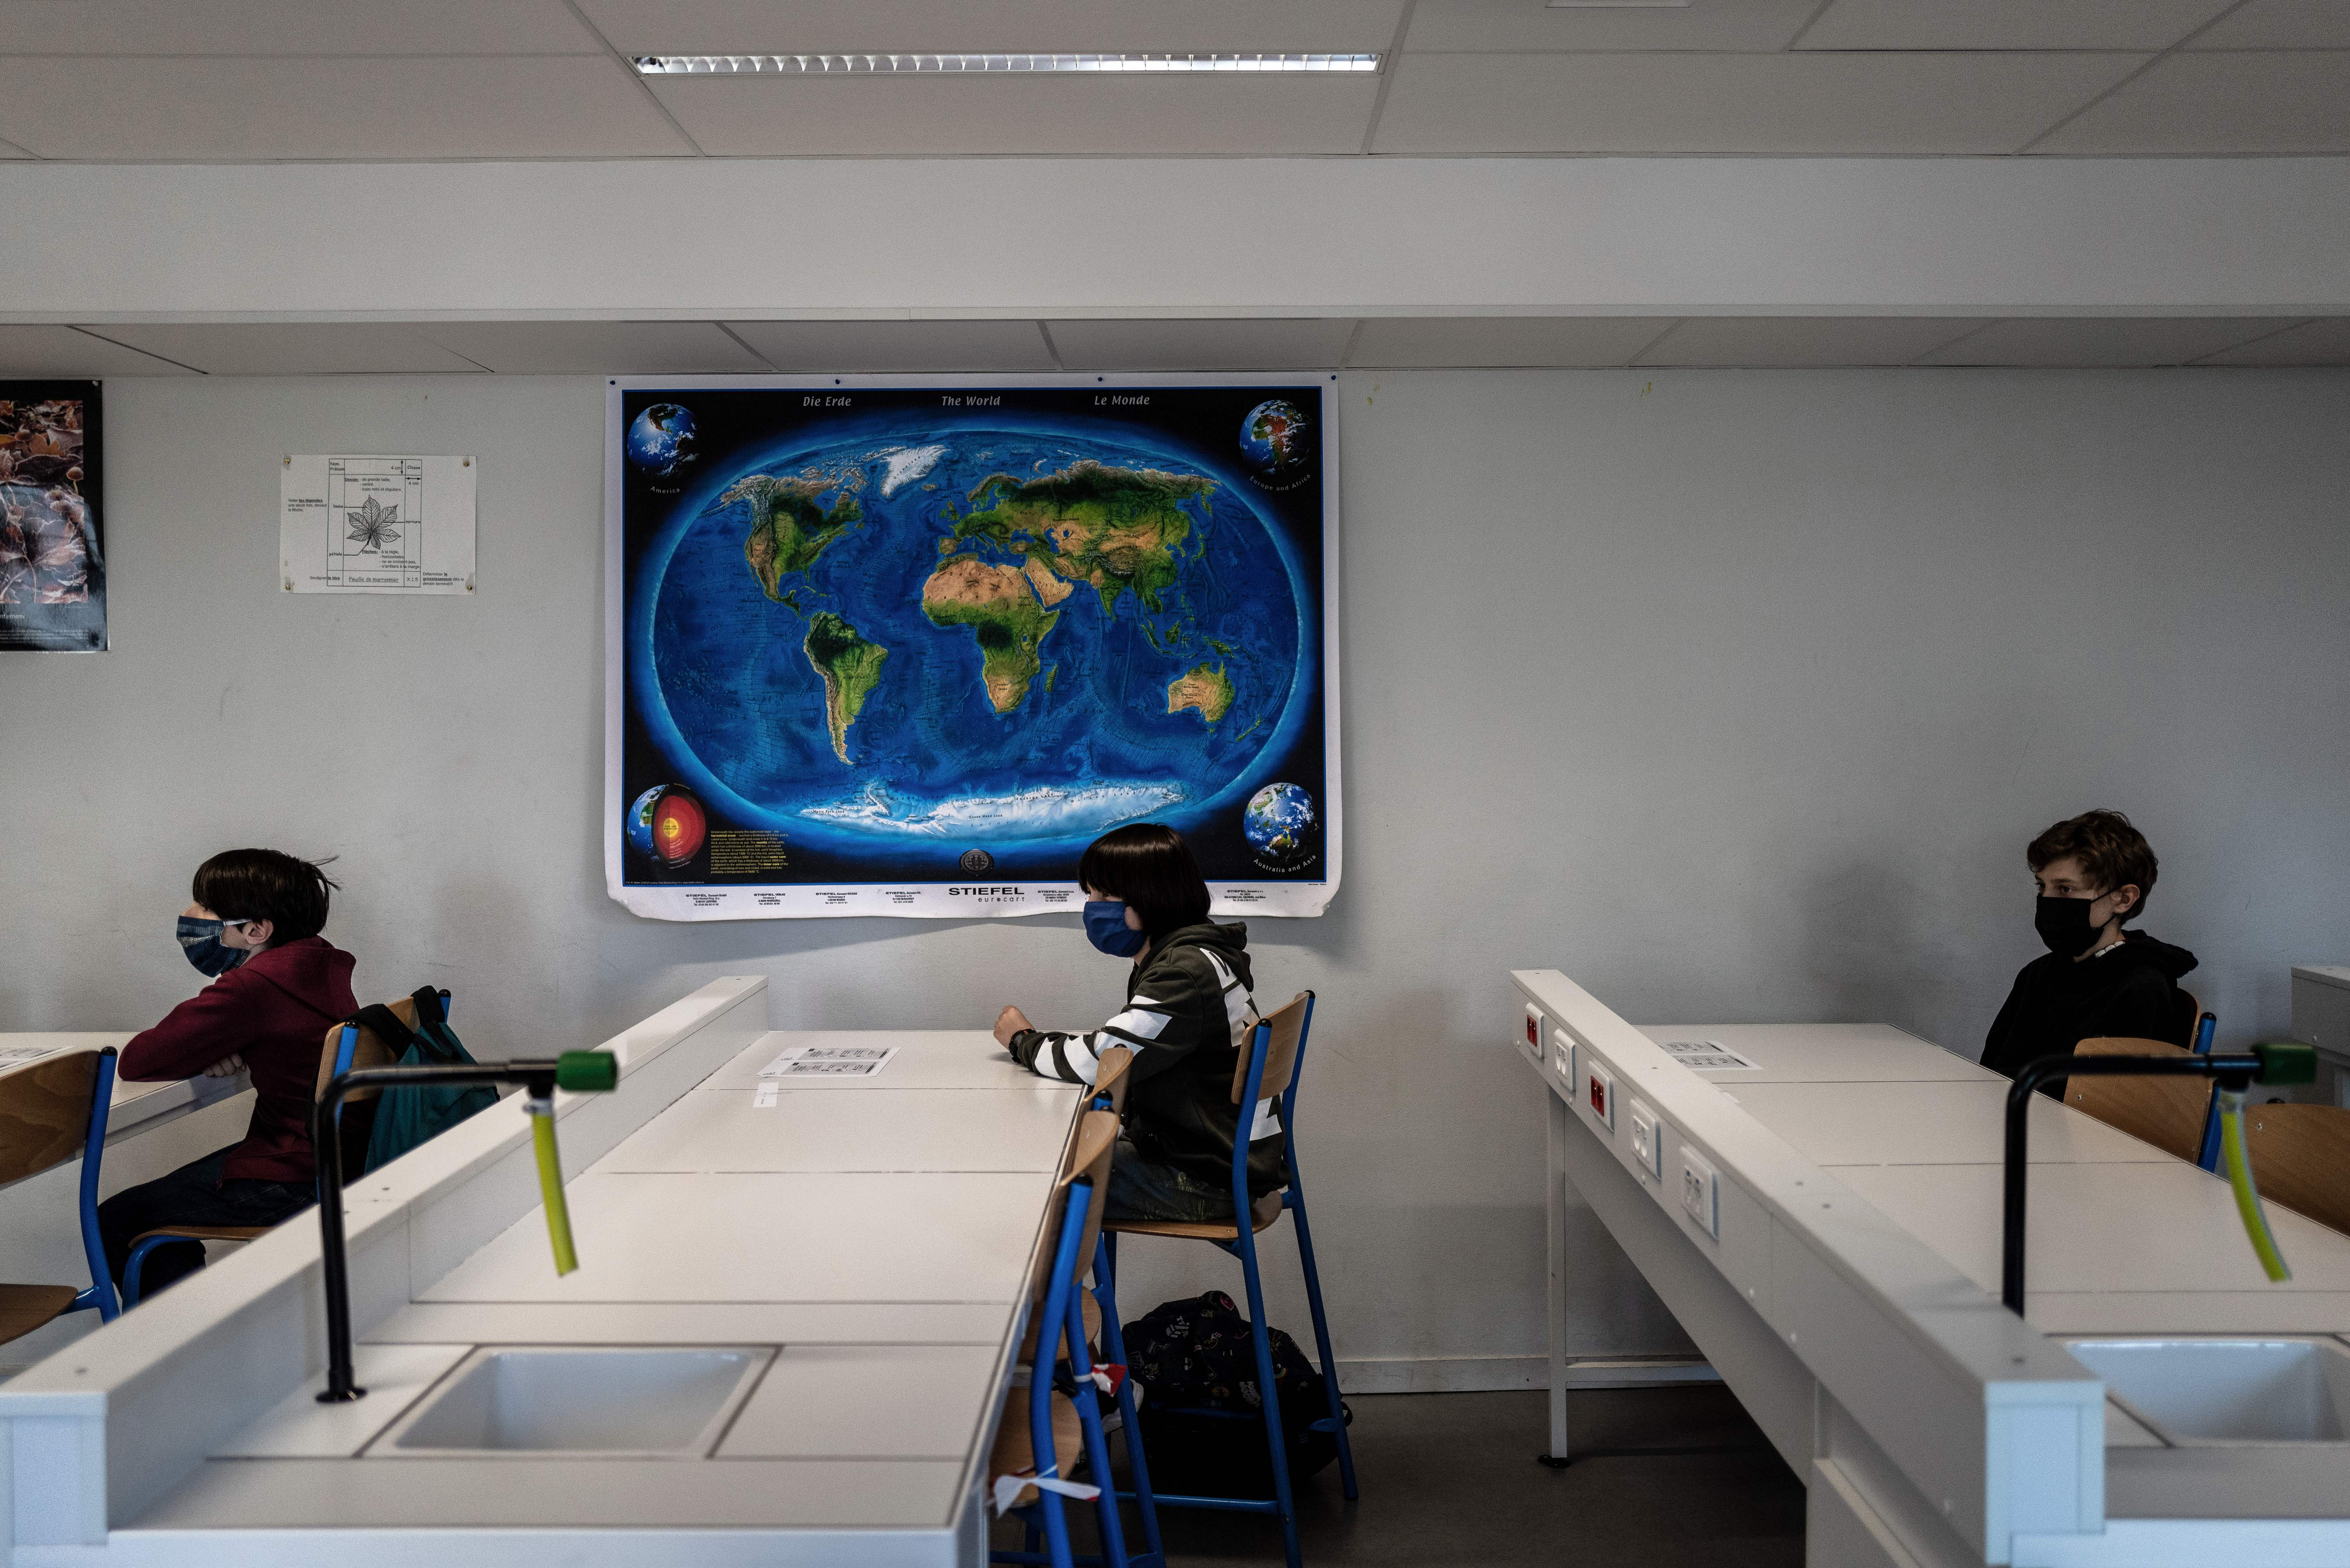 Schoolchildren wearing protective face masks attend a lesson in a middle school classroom, on May 18, 2020 in Lyon, central eastern France, after France eased lockdown measures to curb the spread of the COVID-19 pandemic, caused by the novel coronavirus. (Photo by JEFF PACHOUD / AFP) (Photo by JEFF PACHOUD/AFP via Getty Images)